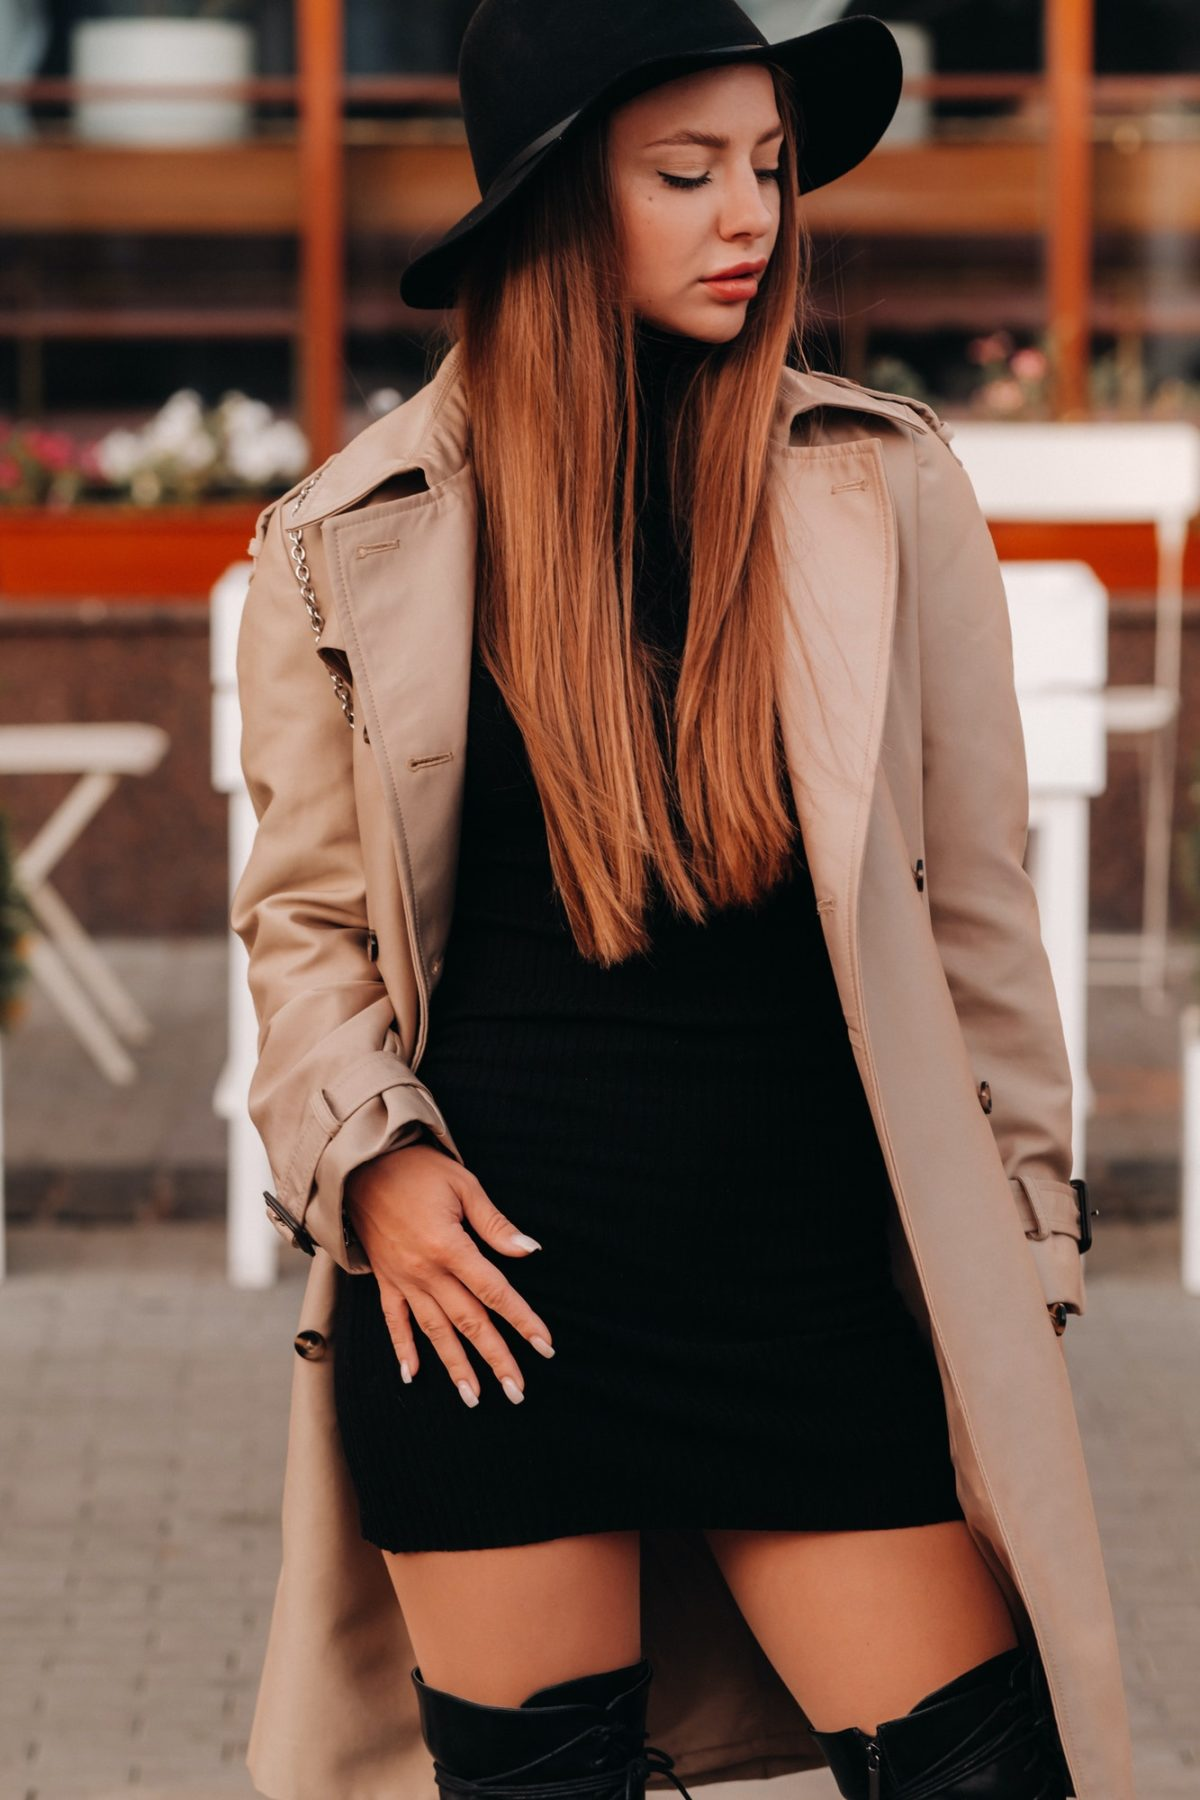 Stylish young woman in a beige coat in a black hat on a city street. Women's street fashion